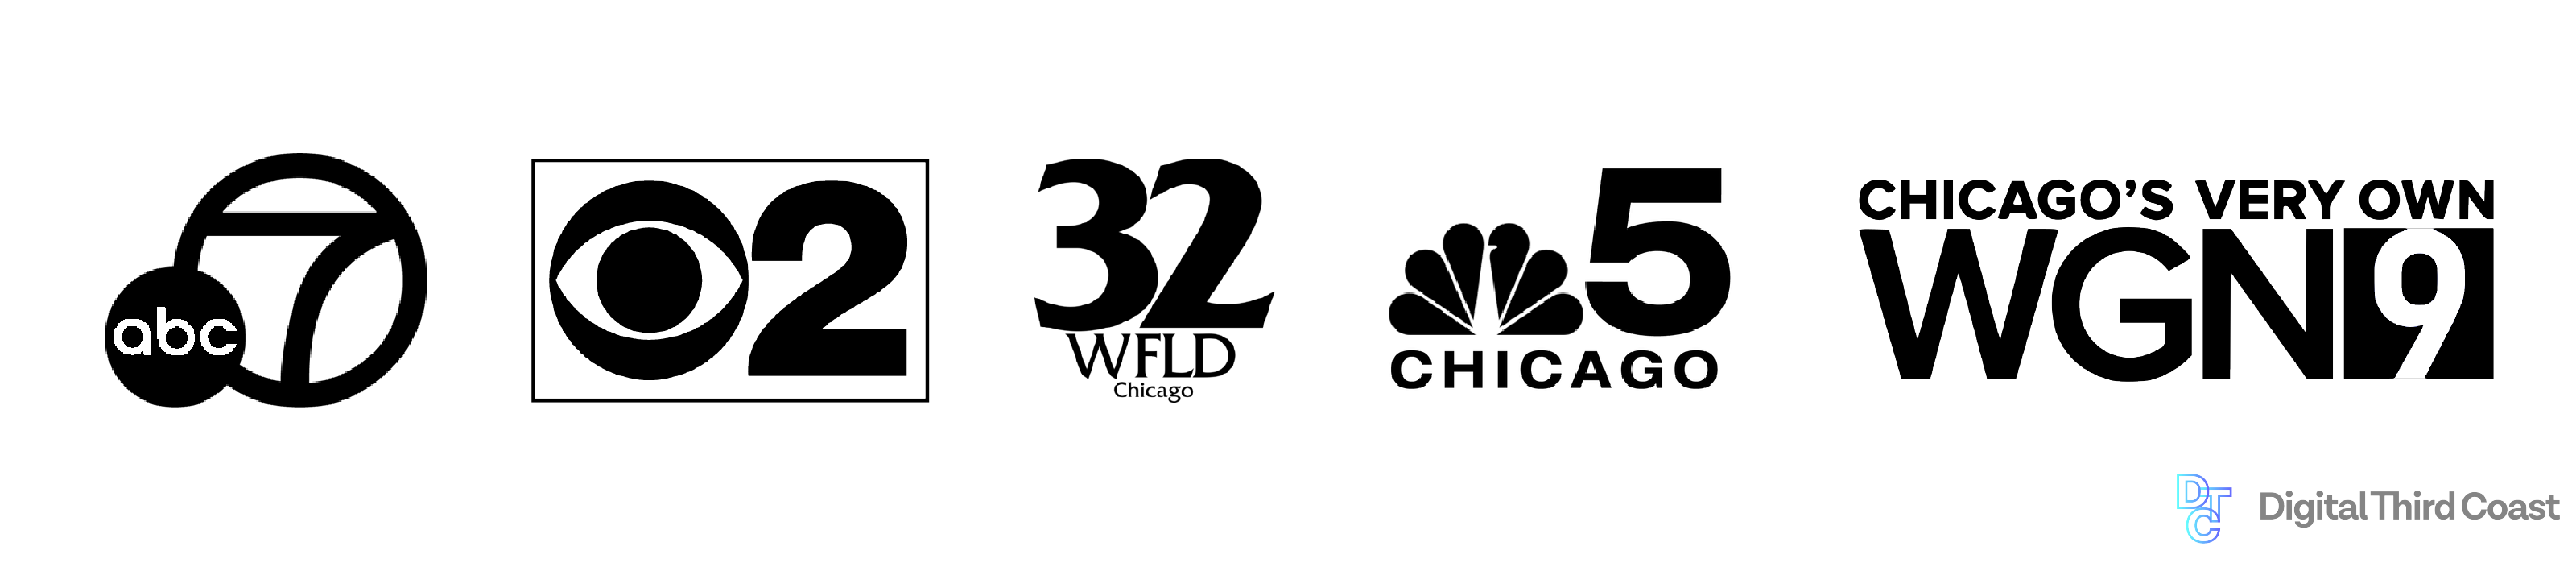 Chicago local television station names